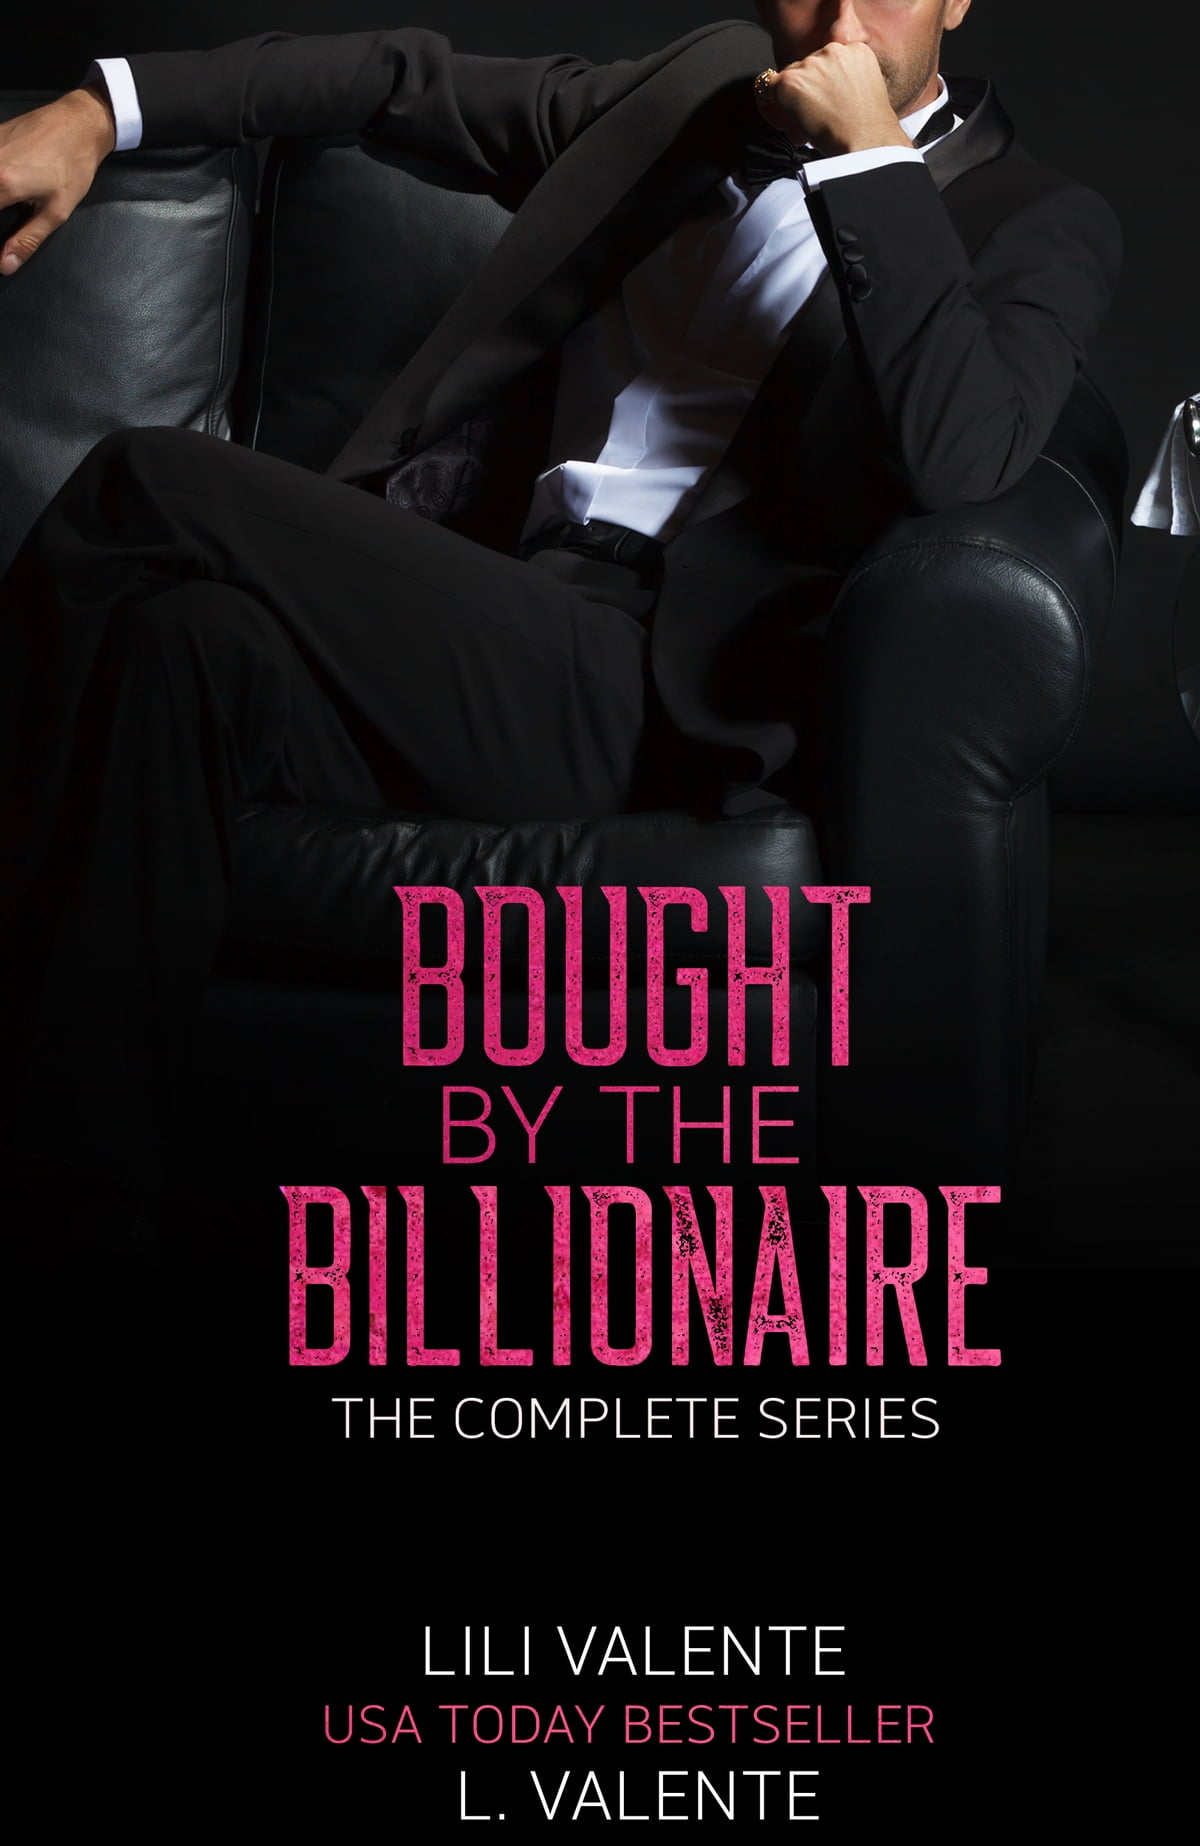 Bought by the Billionaire: The Series eBook by Lili Valente - 9781940848648  | Rakuten Kobo